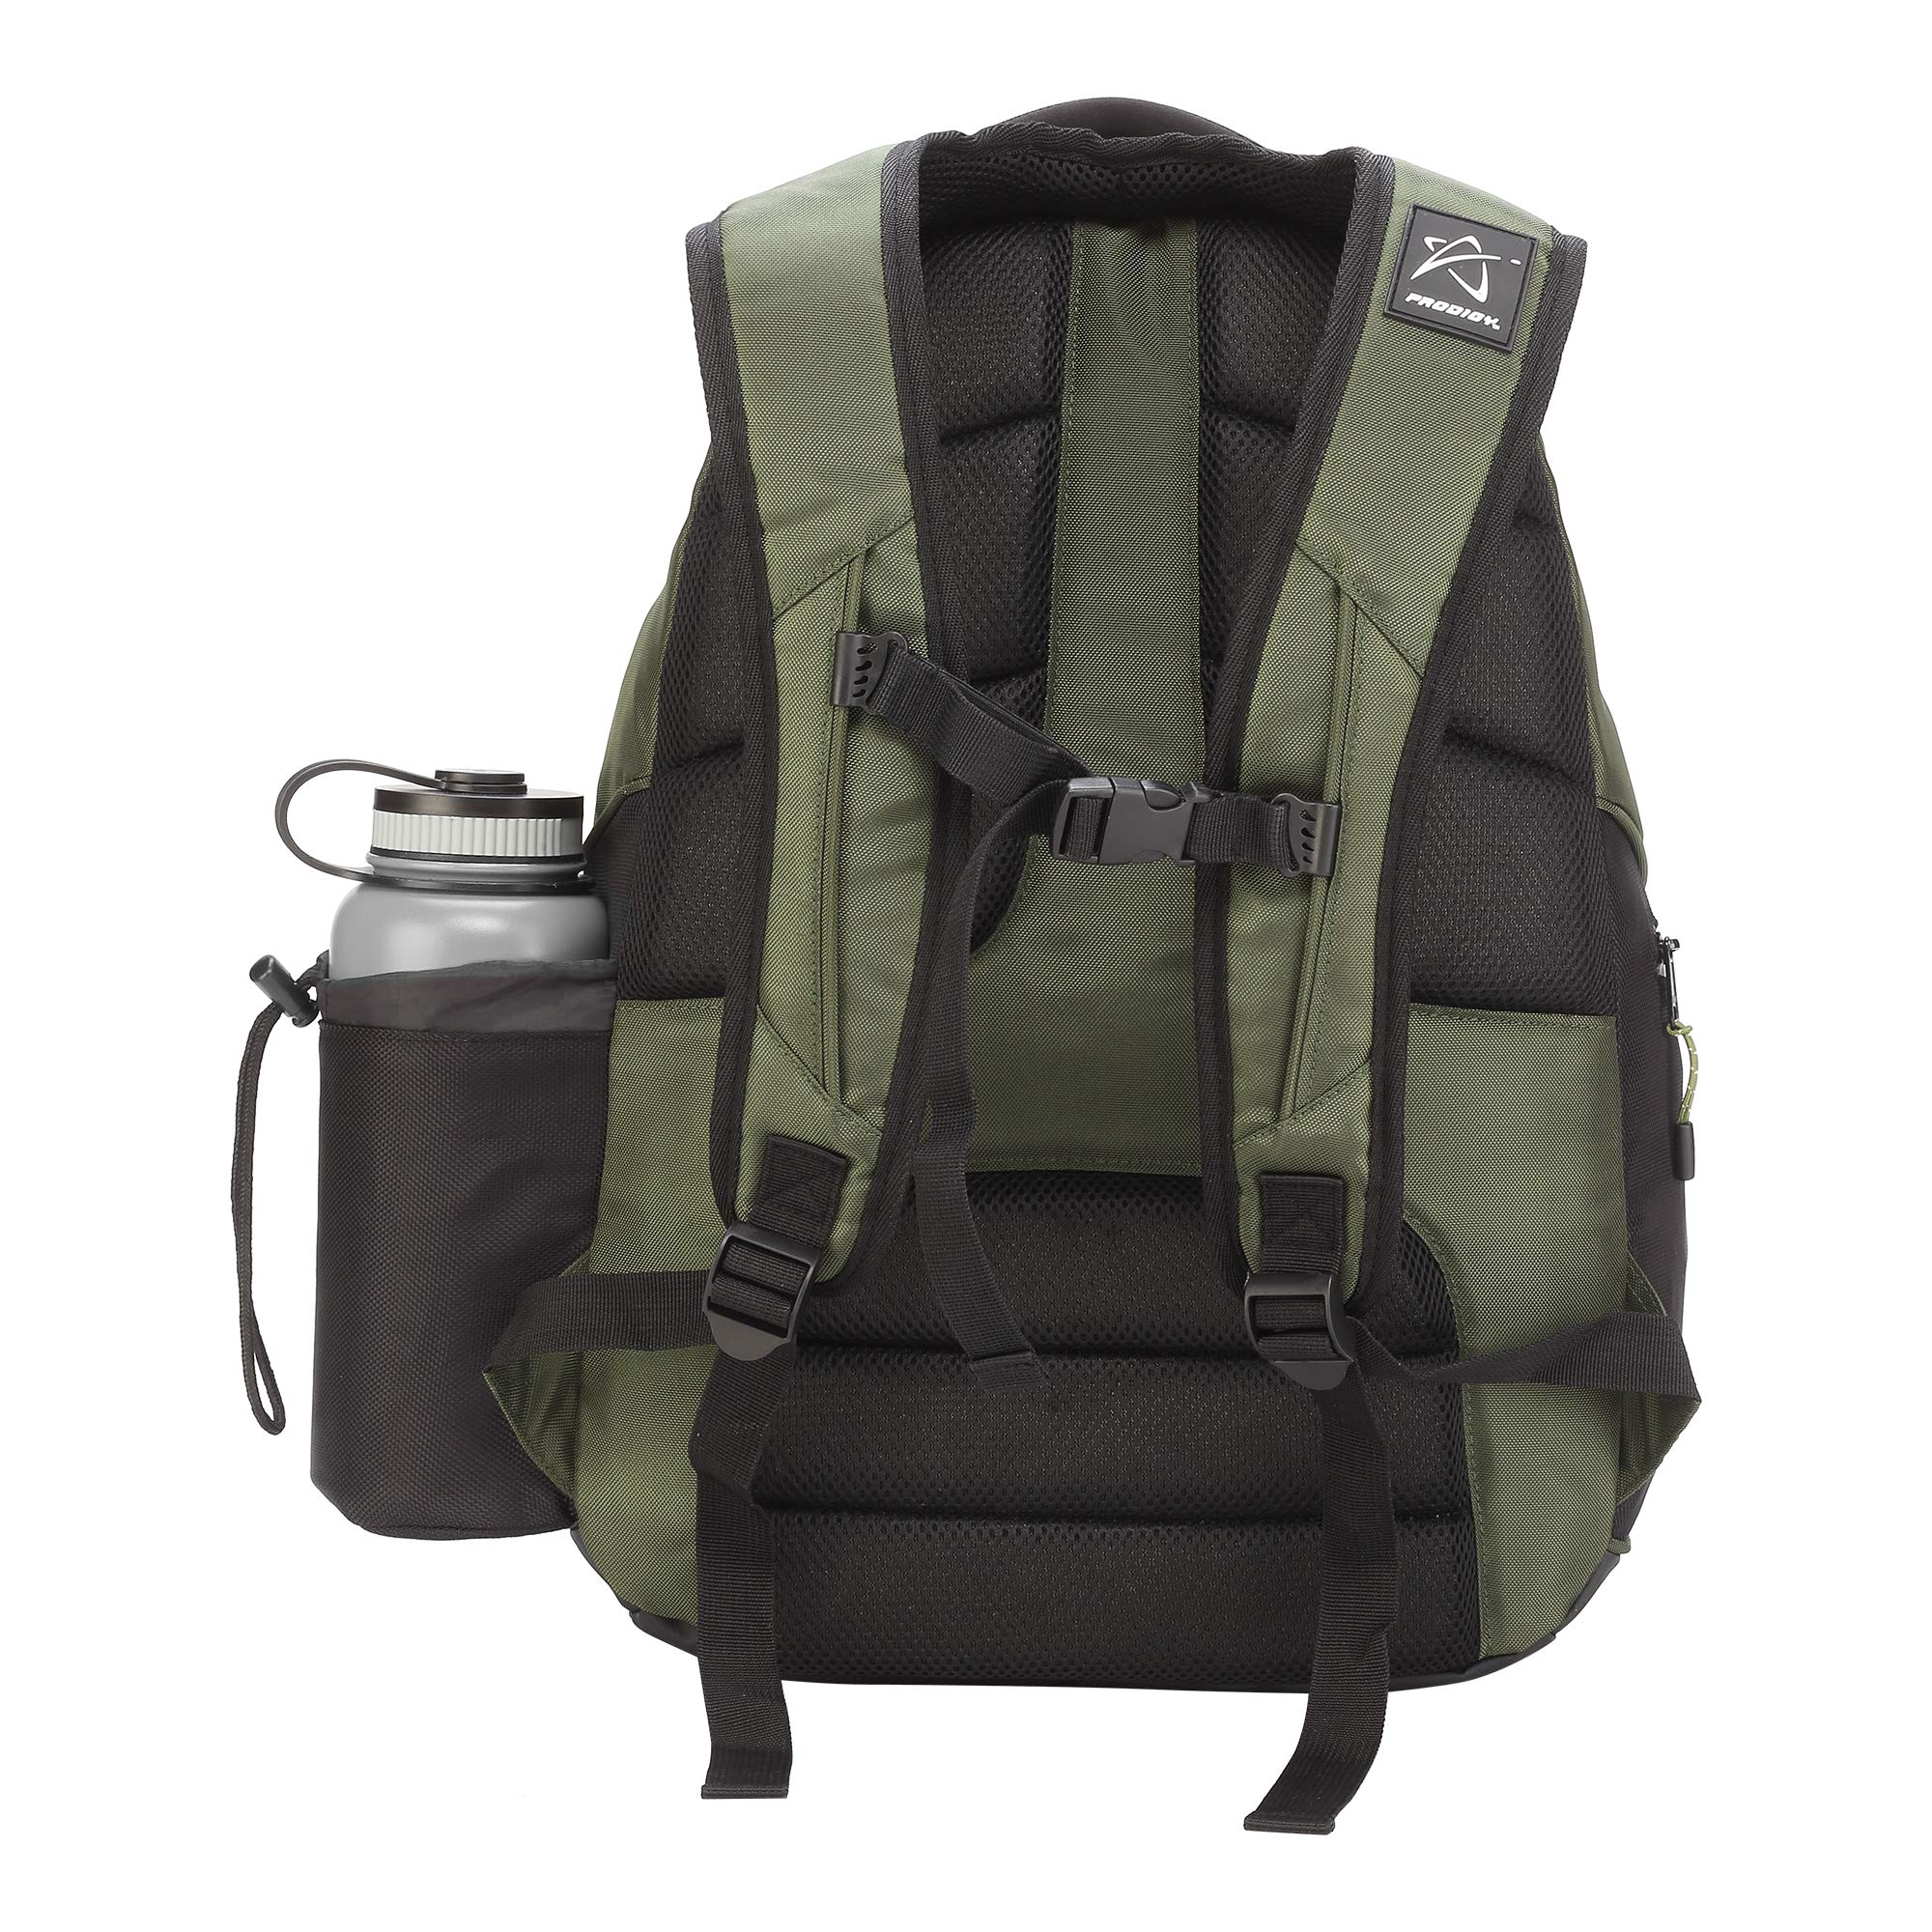 Prodigy Disc BP-3 V2 Disc Golf Backpack - Fits 17 Discs - Beginner Friendly, Affordable (Green/Black) by Prodigy Disc (Image #2)